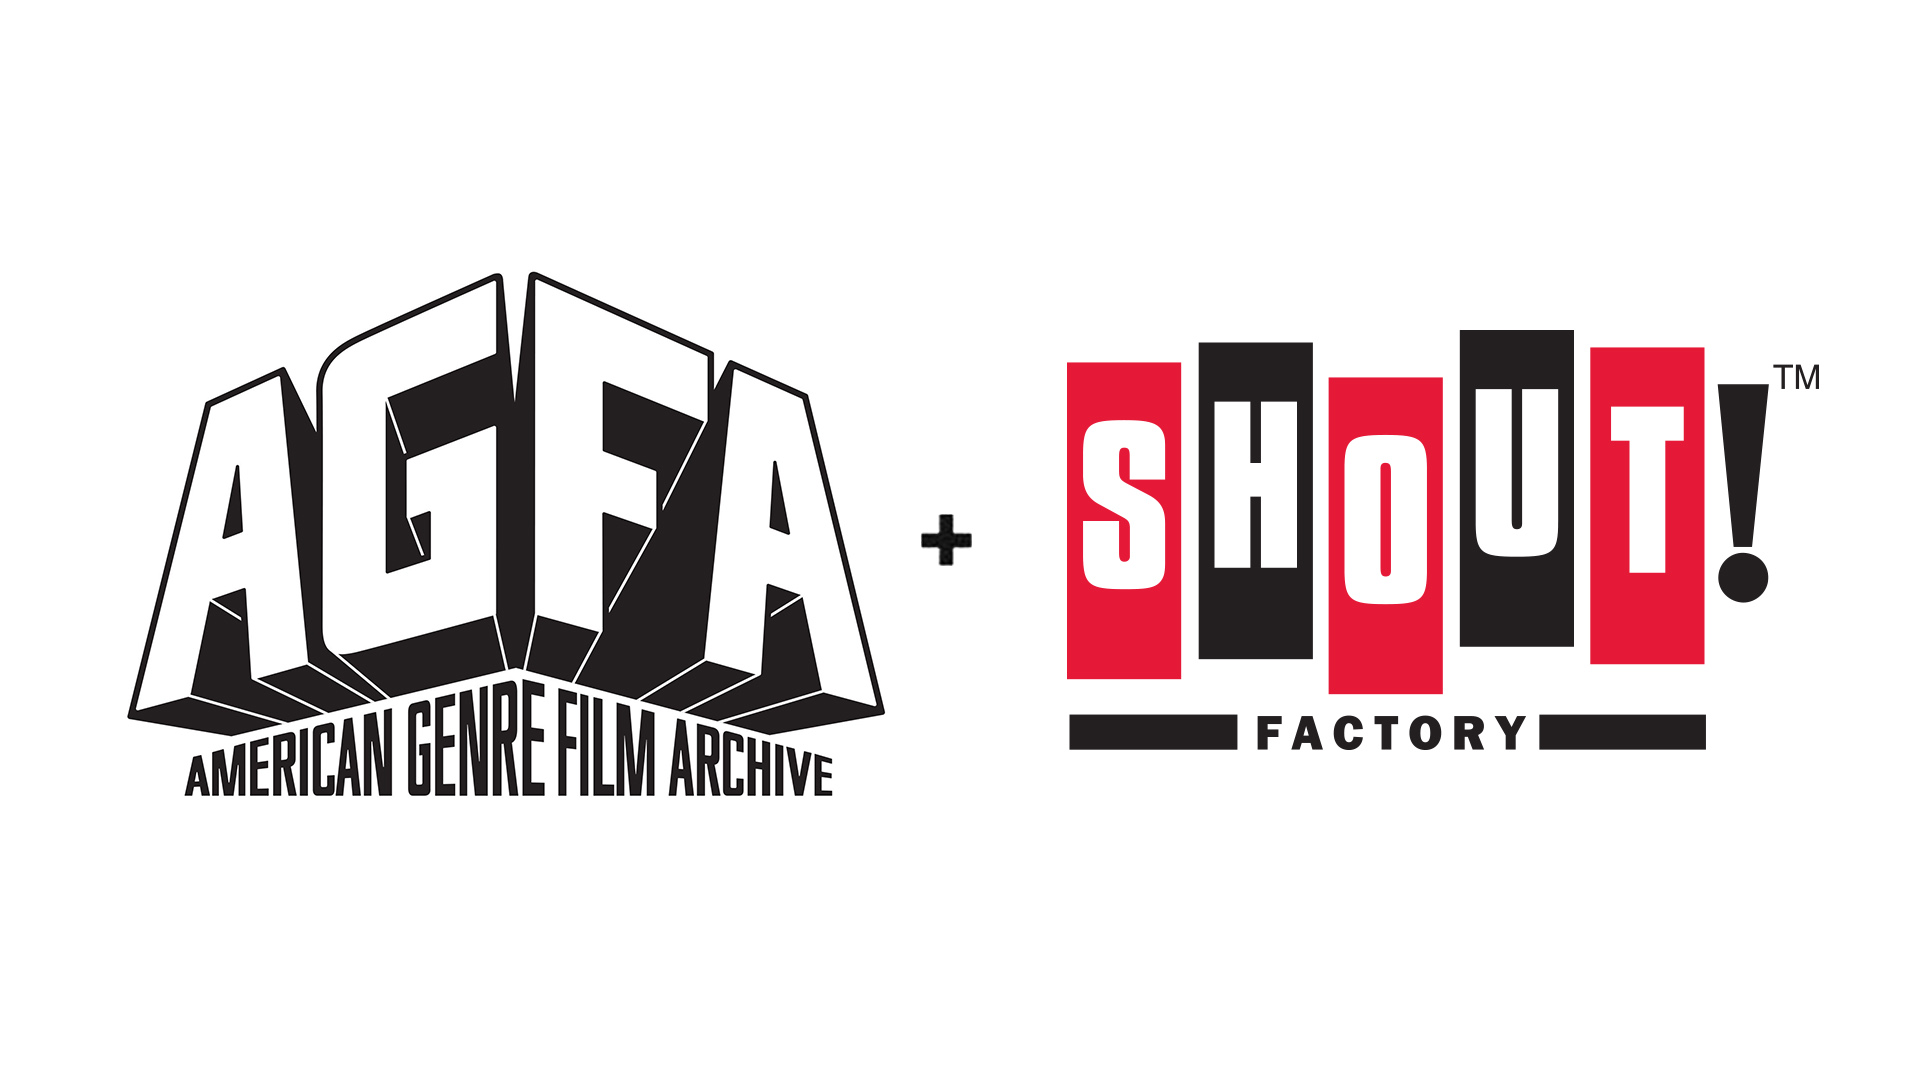 American Genre Film Archive And Shout! Factory Announce Theatrical Distribution Partnership